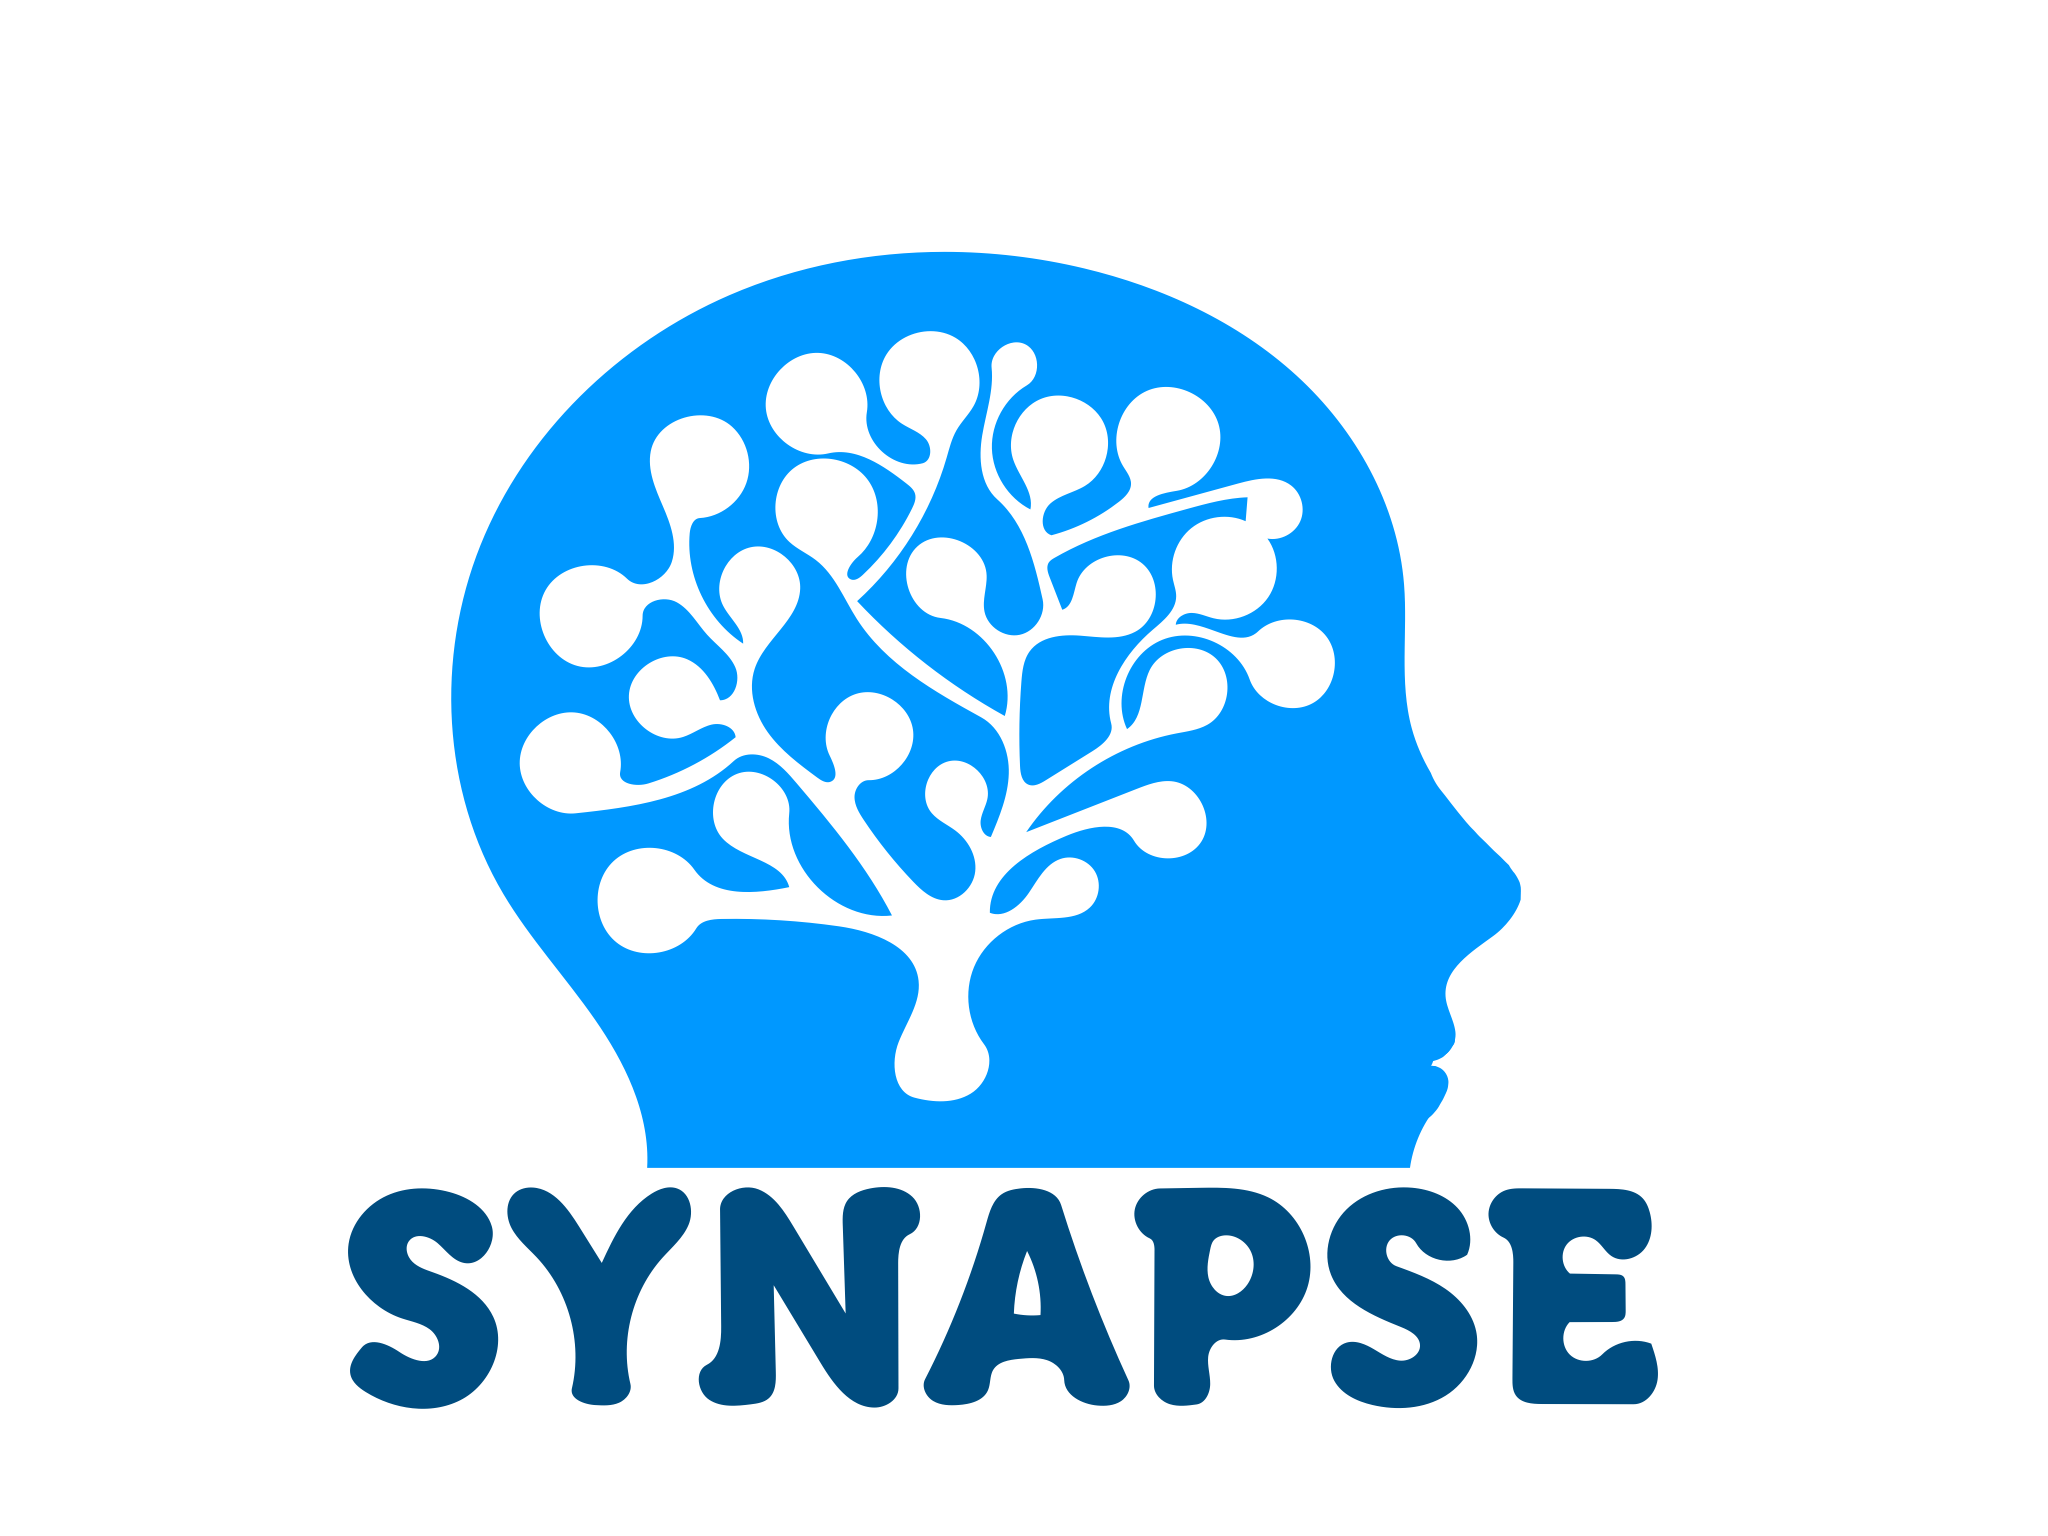 SYNAPSE - SYNAPSE connects students and professionals in the fields of neuroscience, neurology, neurosurgery and psychiatry.